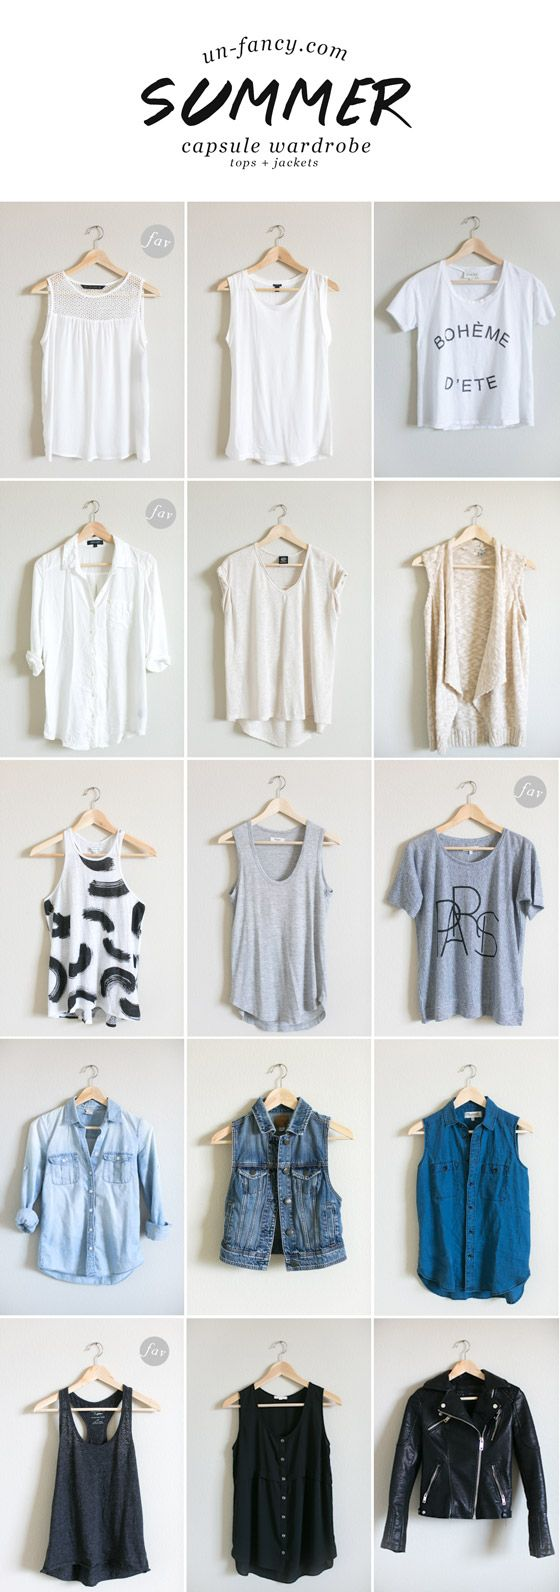 25+ Best Ideas About Travel Wardrobe Summer On Pinterest